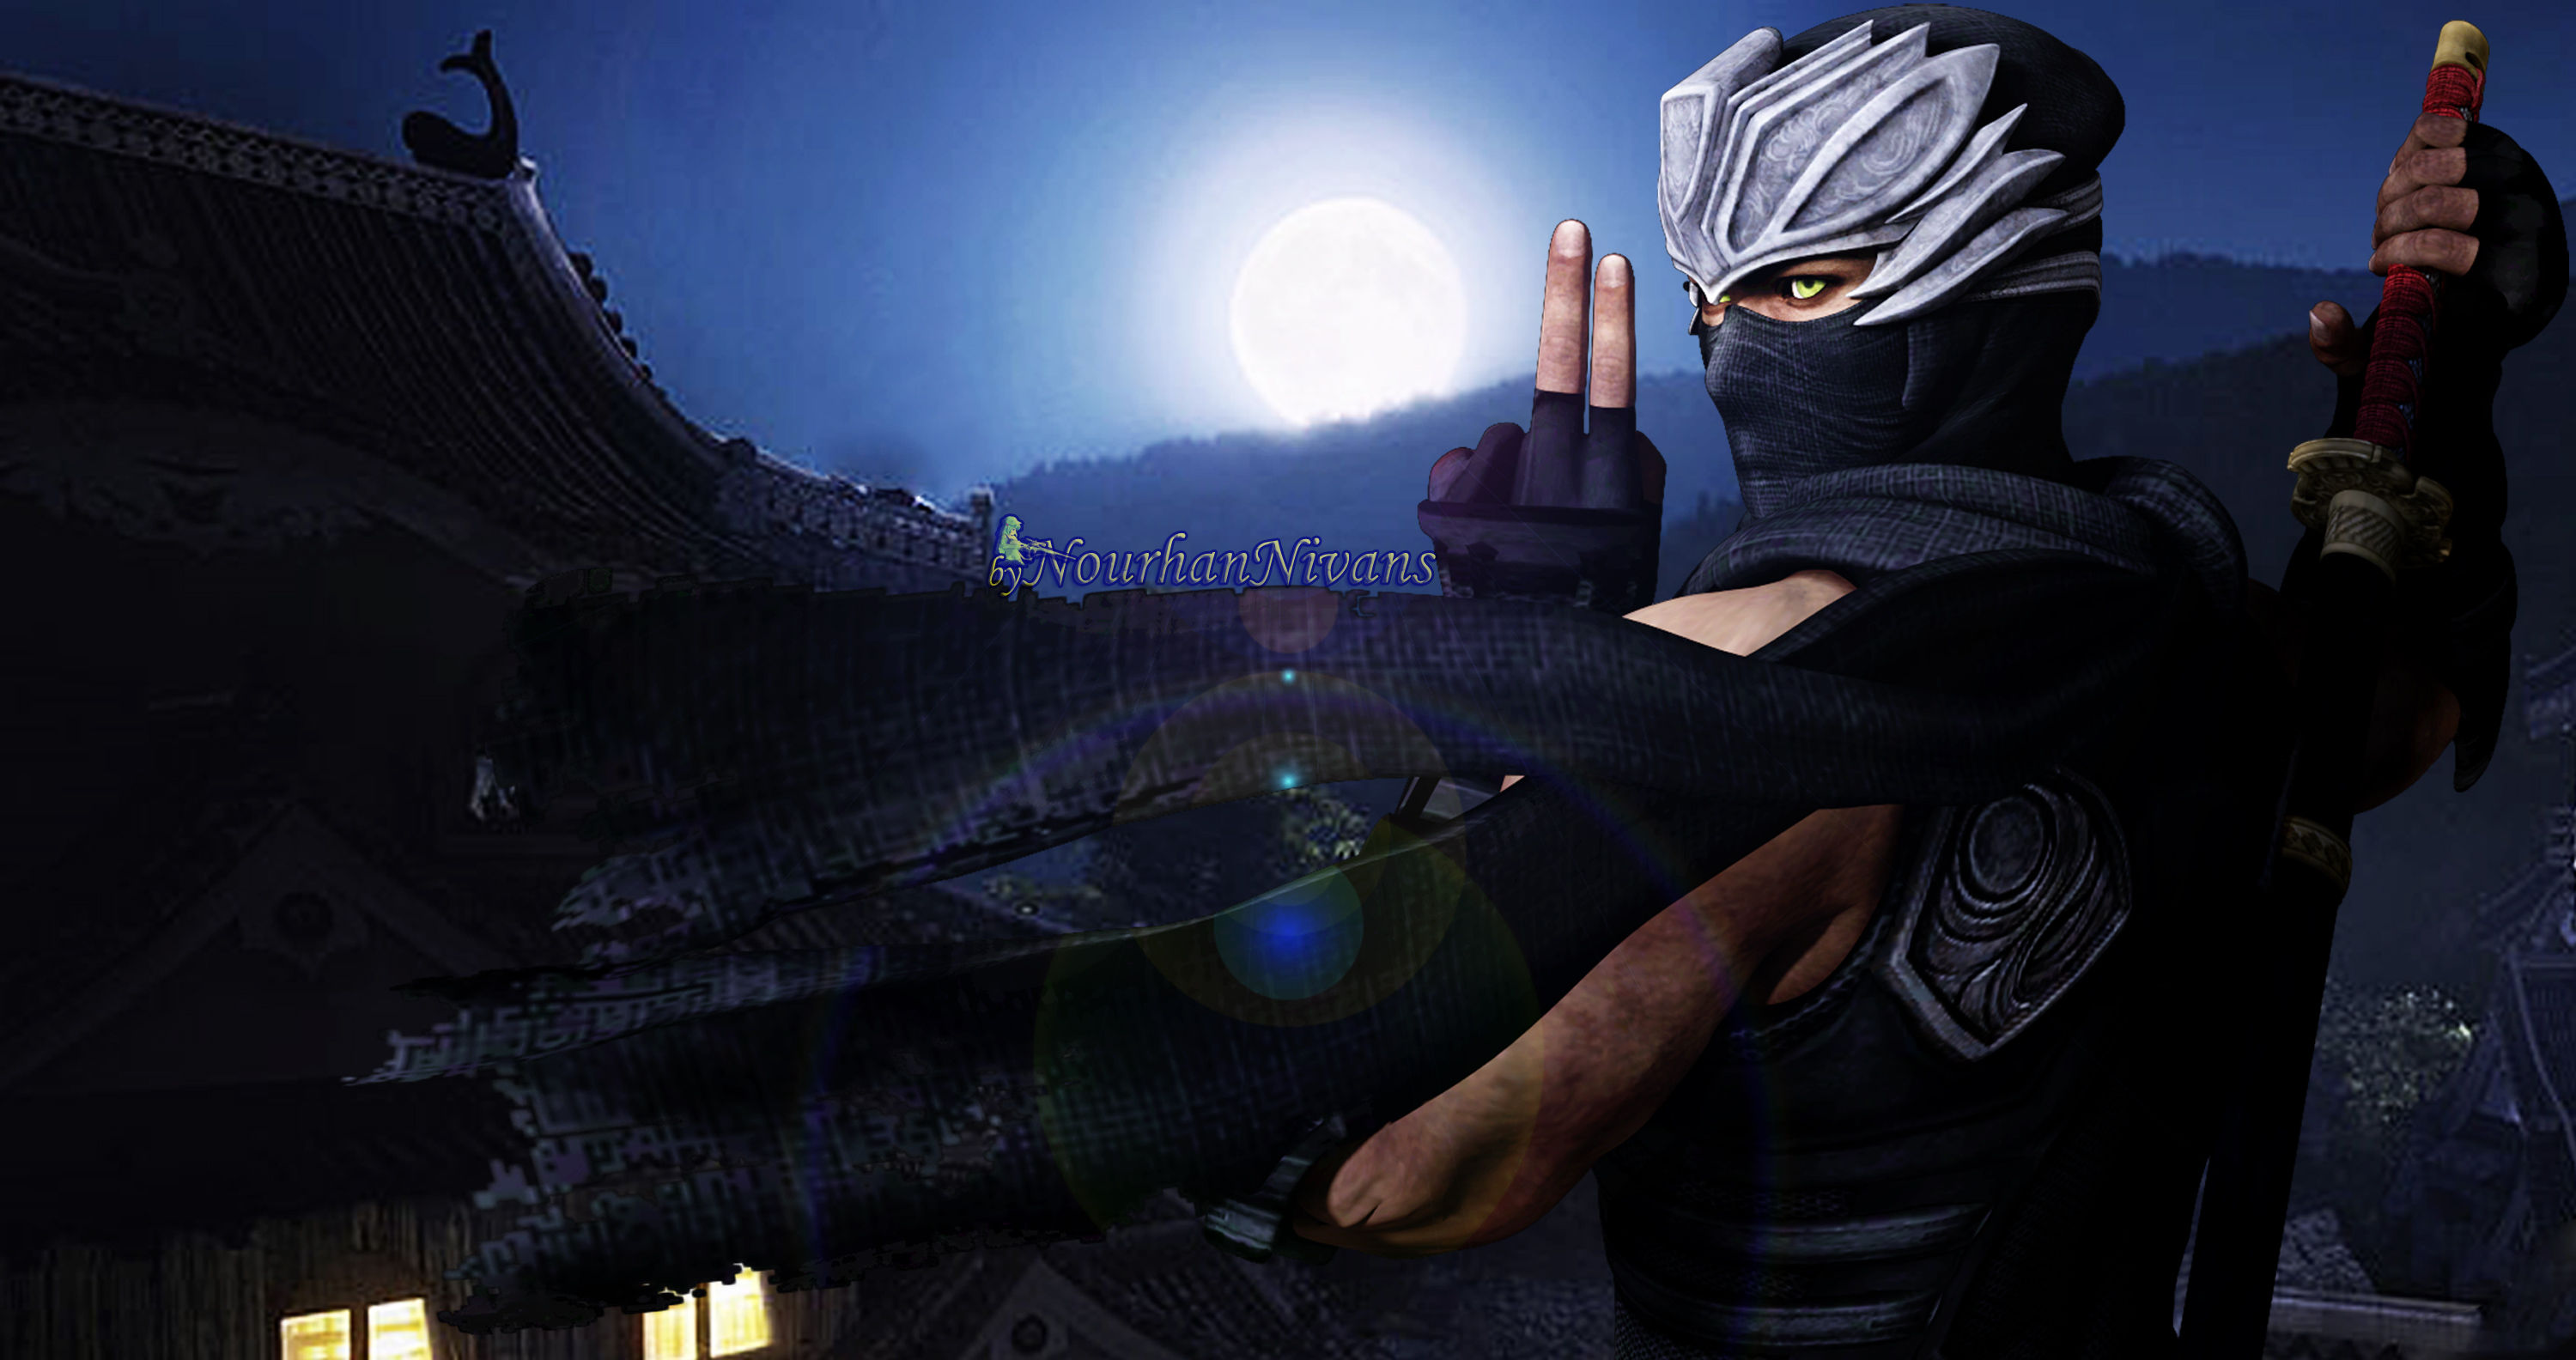 Ryu Hayabusa By NourhanNivans On DeviantArt